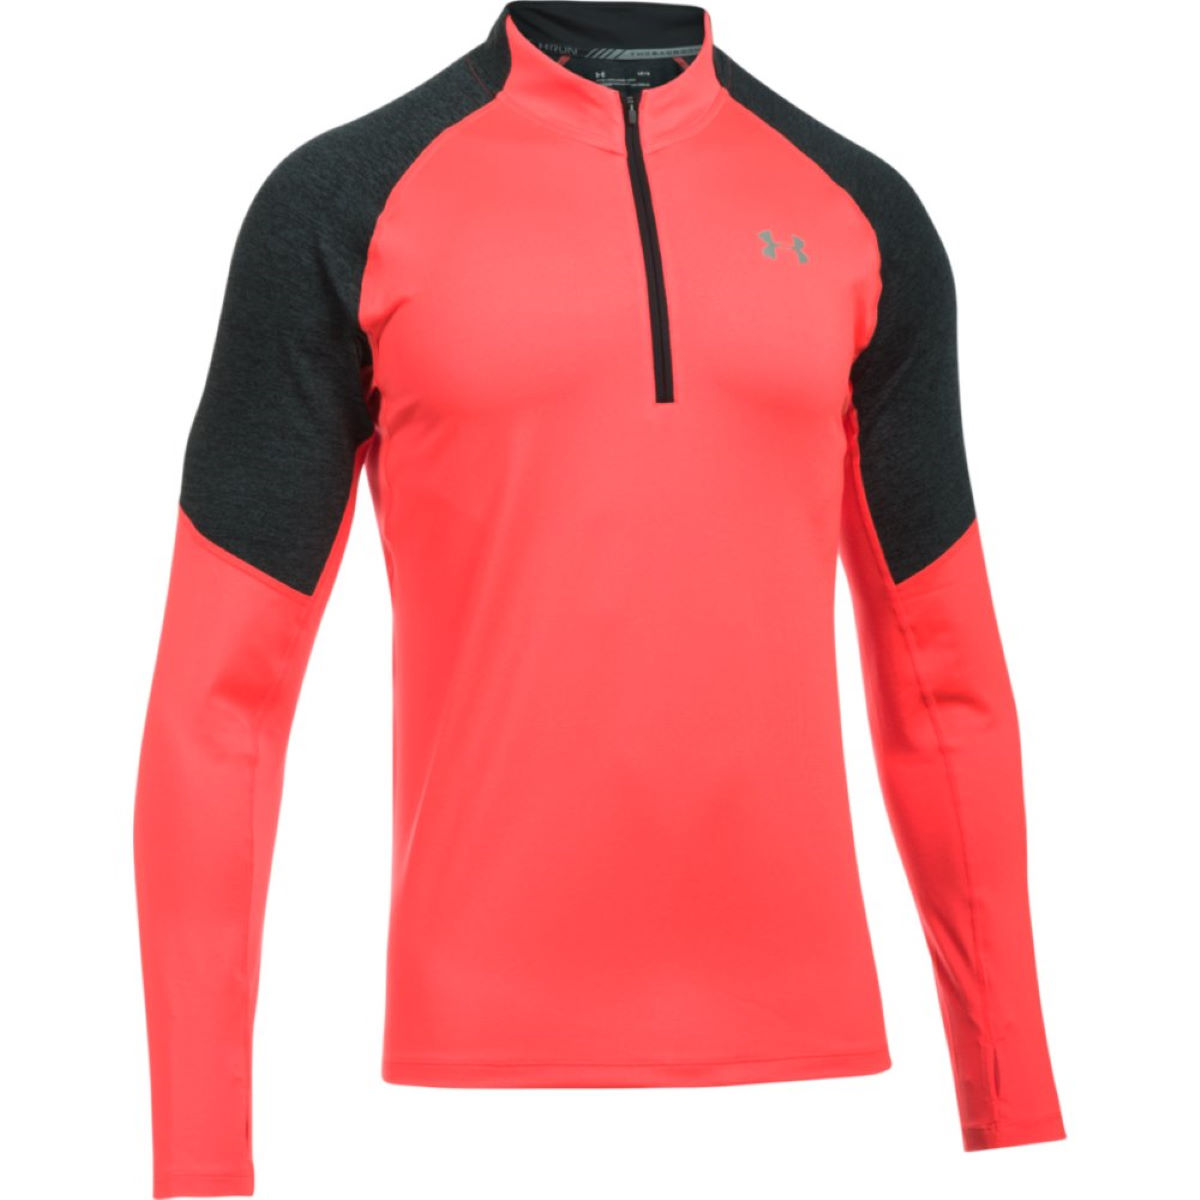 Maillot Under Armour Threadborne Run (1/4 zippé) - S Marathon Red Hauts de running à manches longues